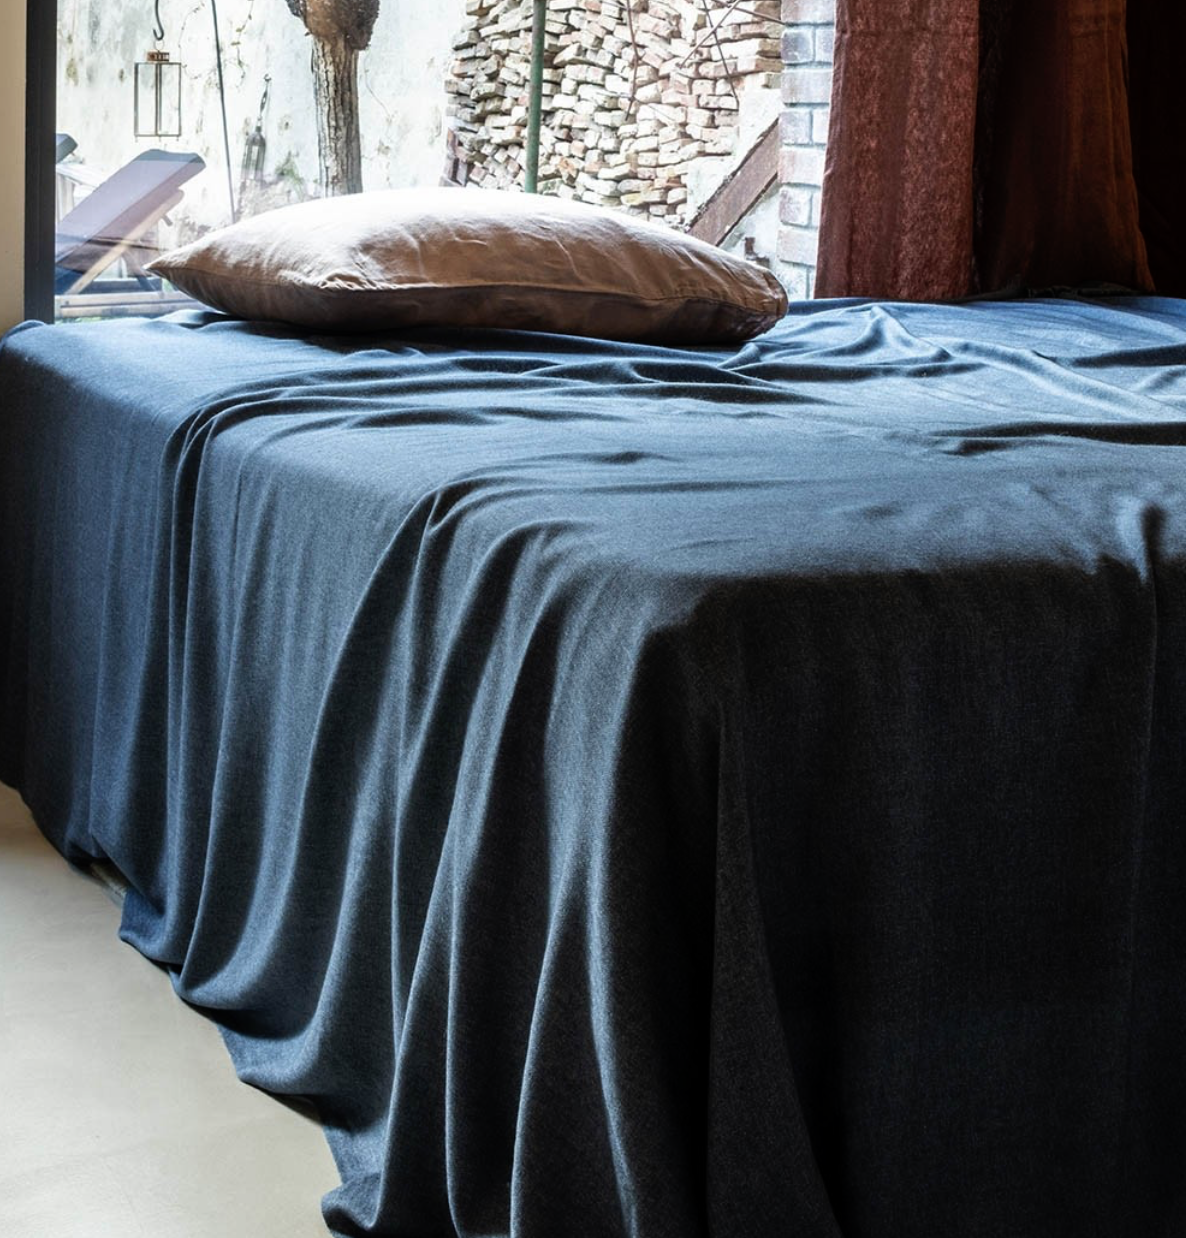 BVT Bedspread and extra fine blanket TOURFAN / 50% cashmere - 50% silk / 150 g / m² / 260 x 260 cm